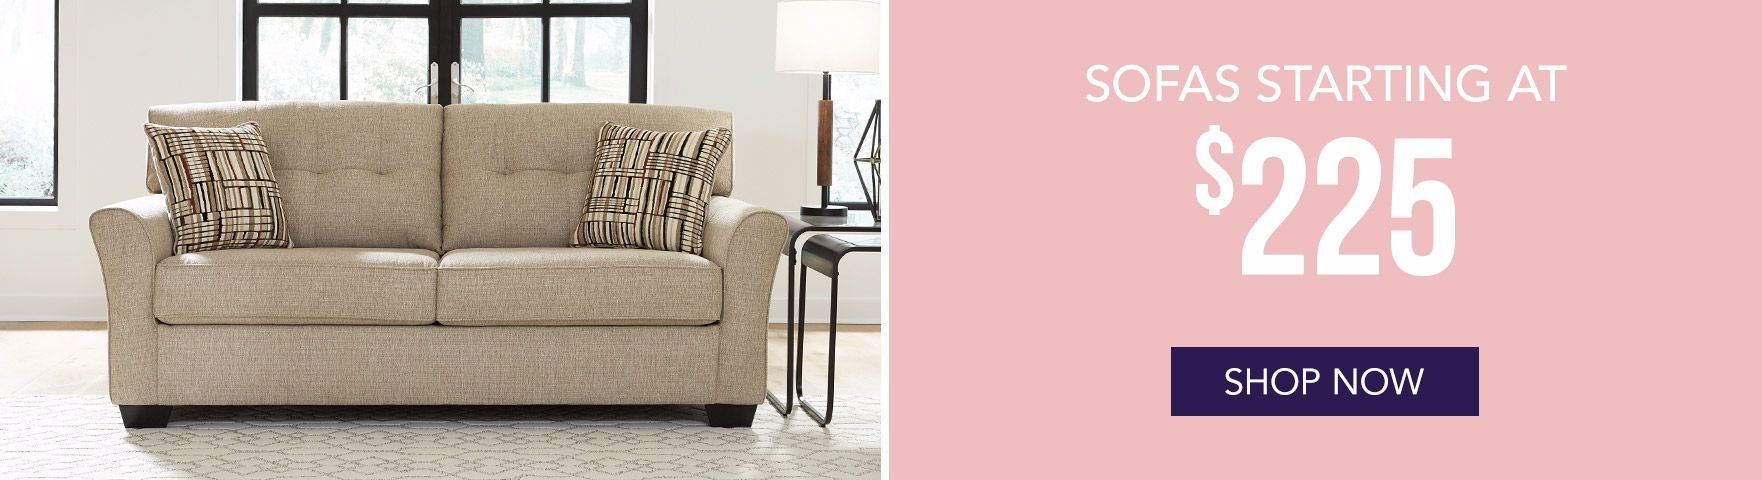 Sofas Starting at $225